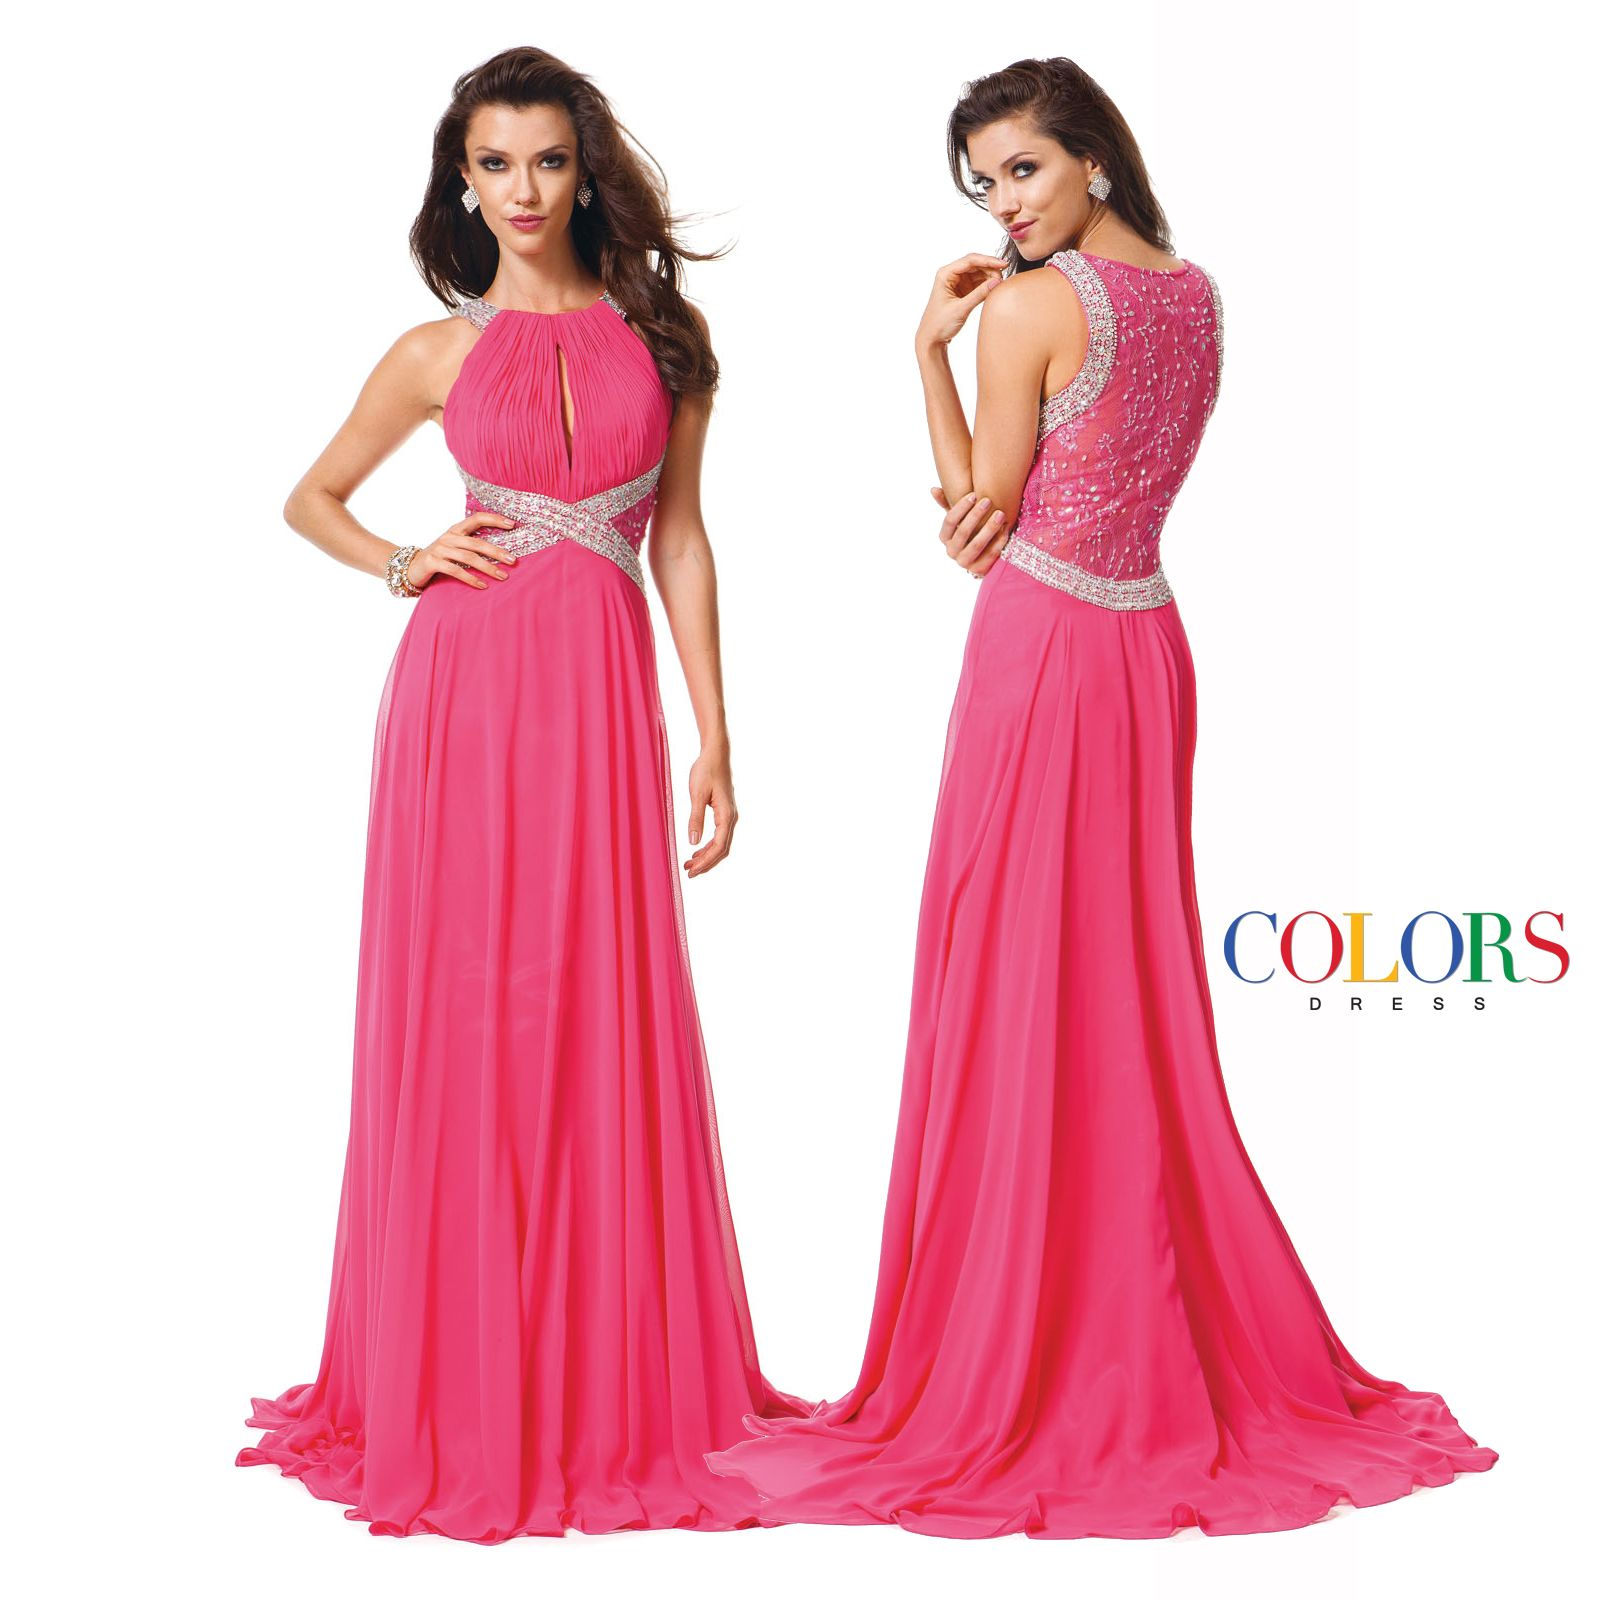 Strong and Sexy! COLORS DRESS Style 1113. #gown #prom #promshopping ...